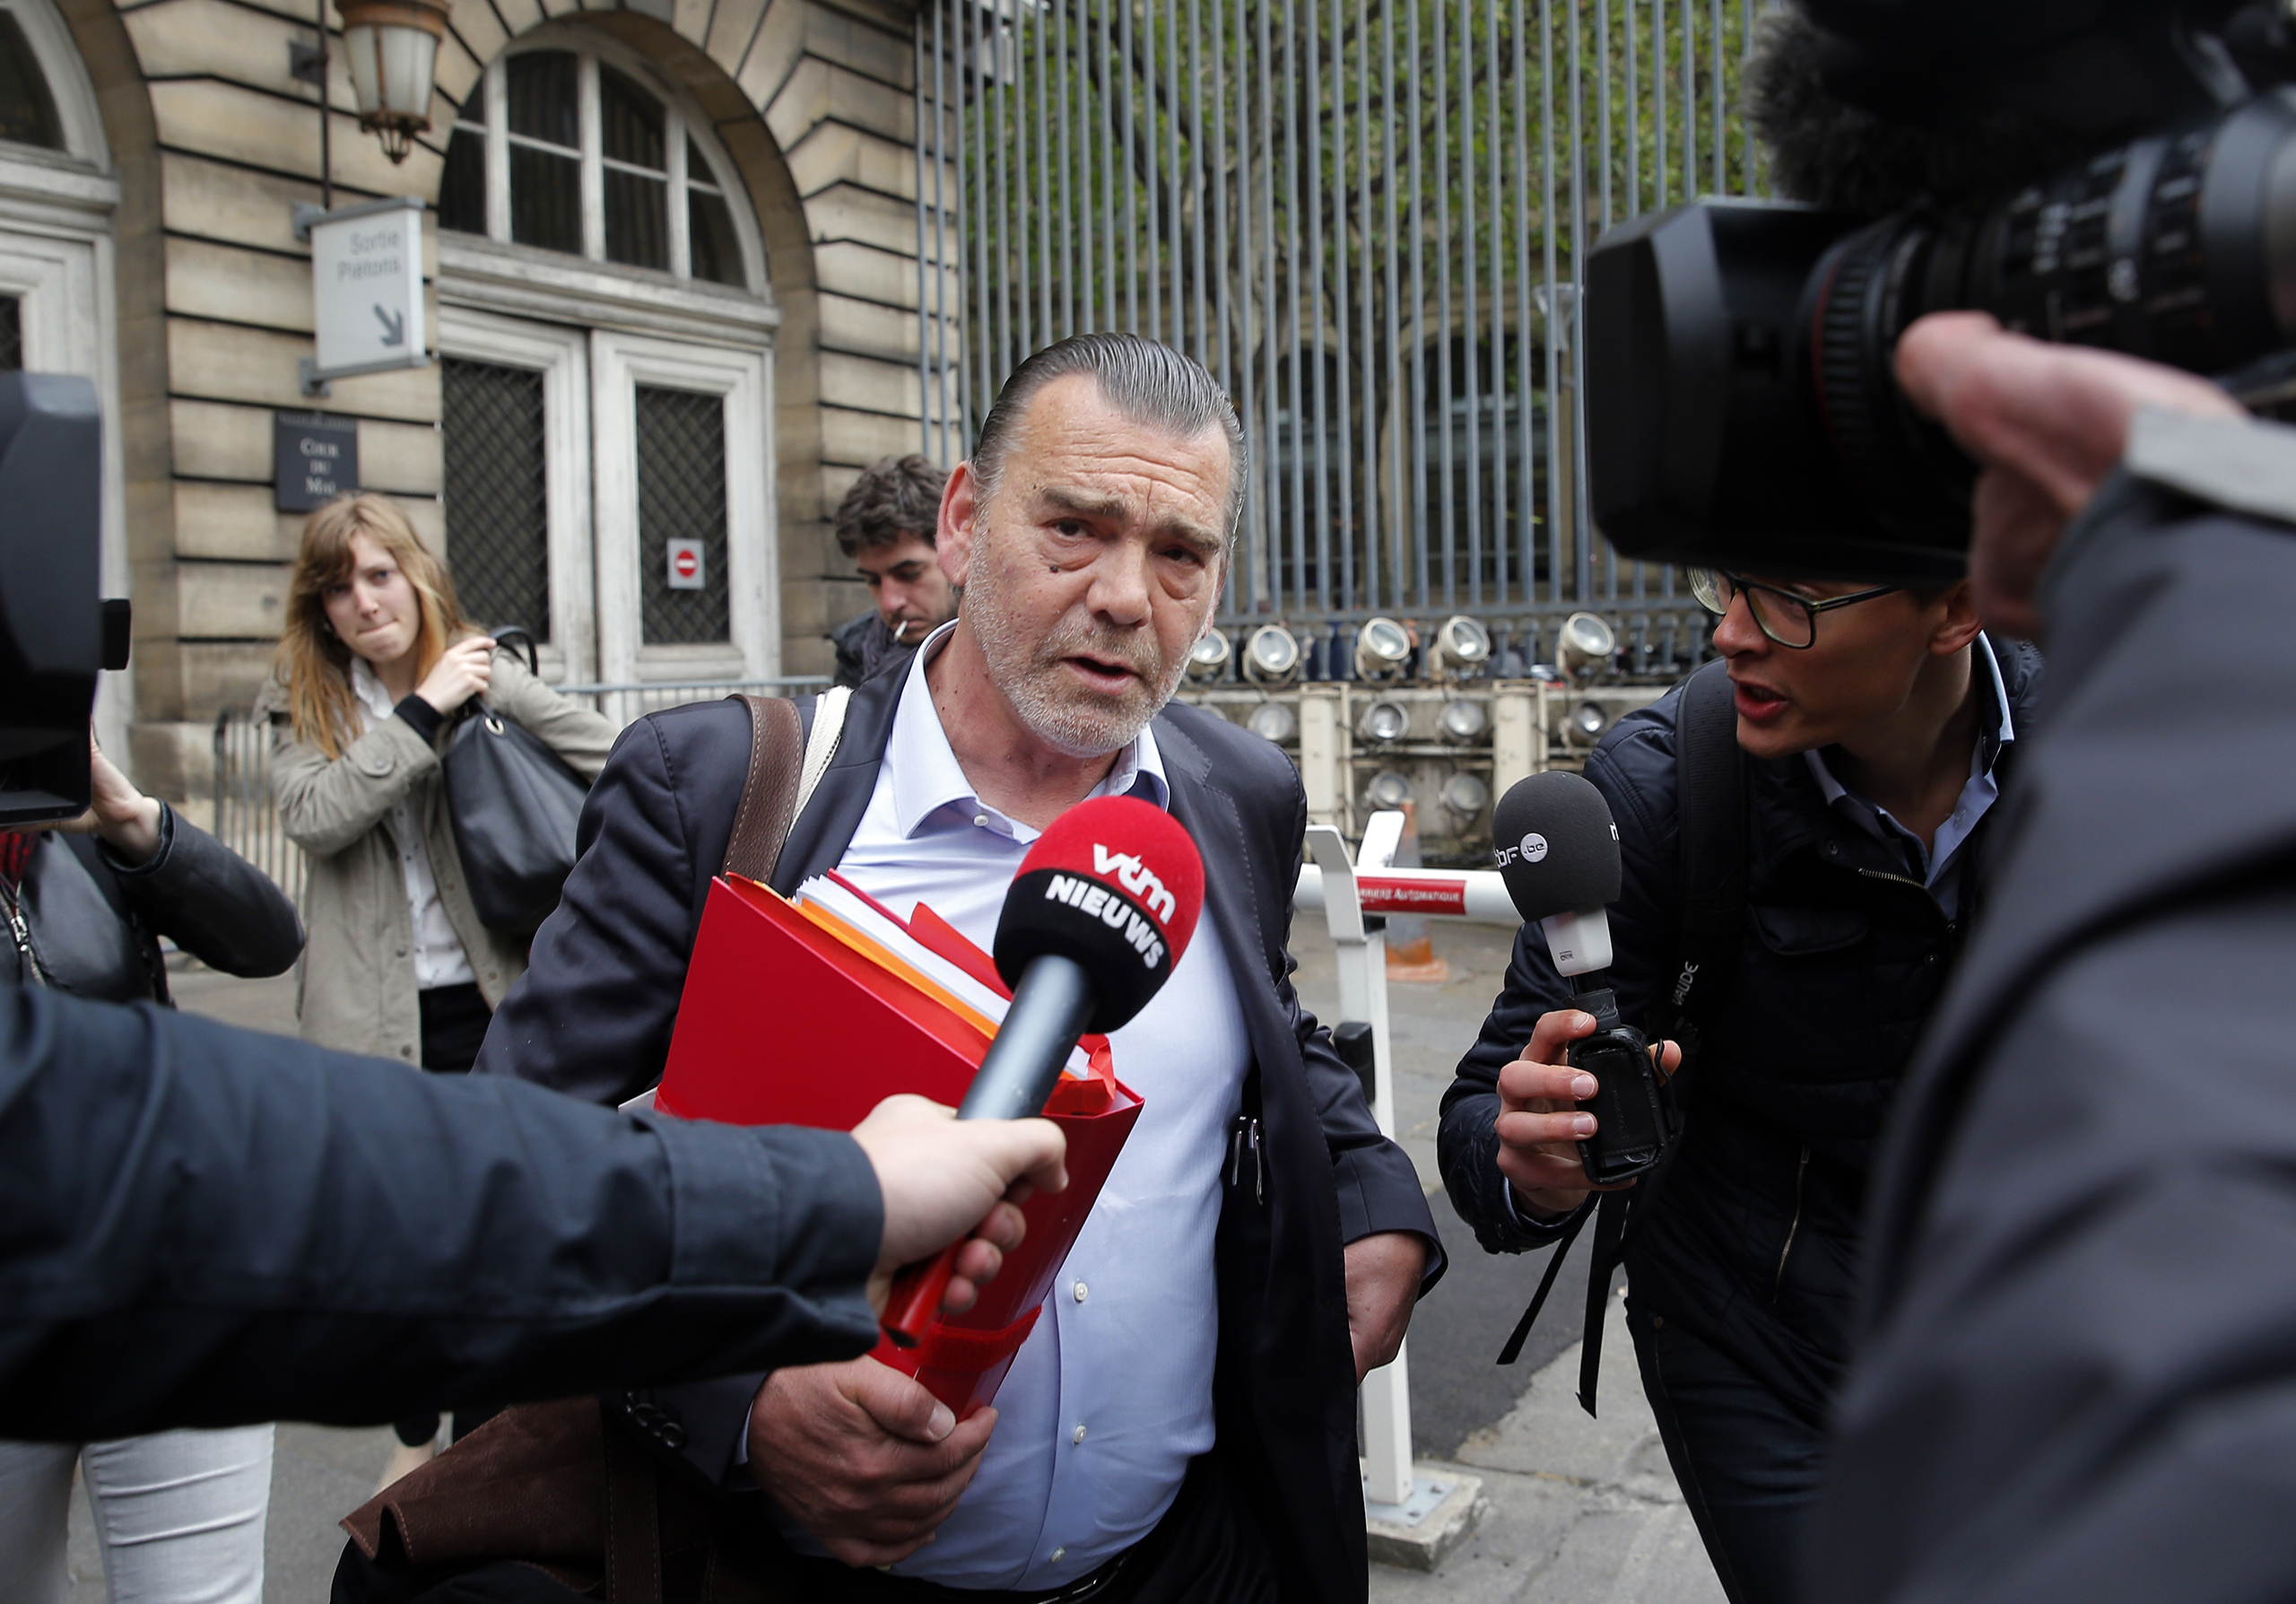 Frank Berton, lawyer of Paris attacks suspect Salah Abdeslam, addresses the media as he arrives at the courthouse In Paris, May 20, 2016.